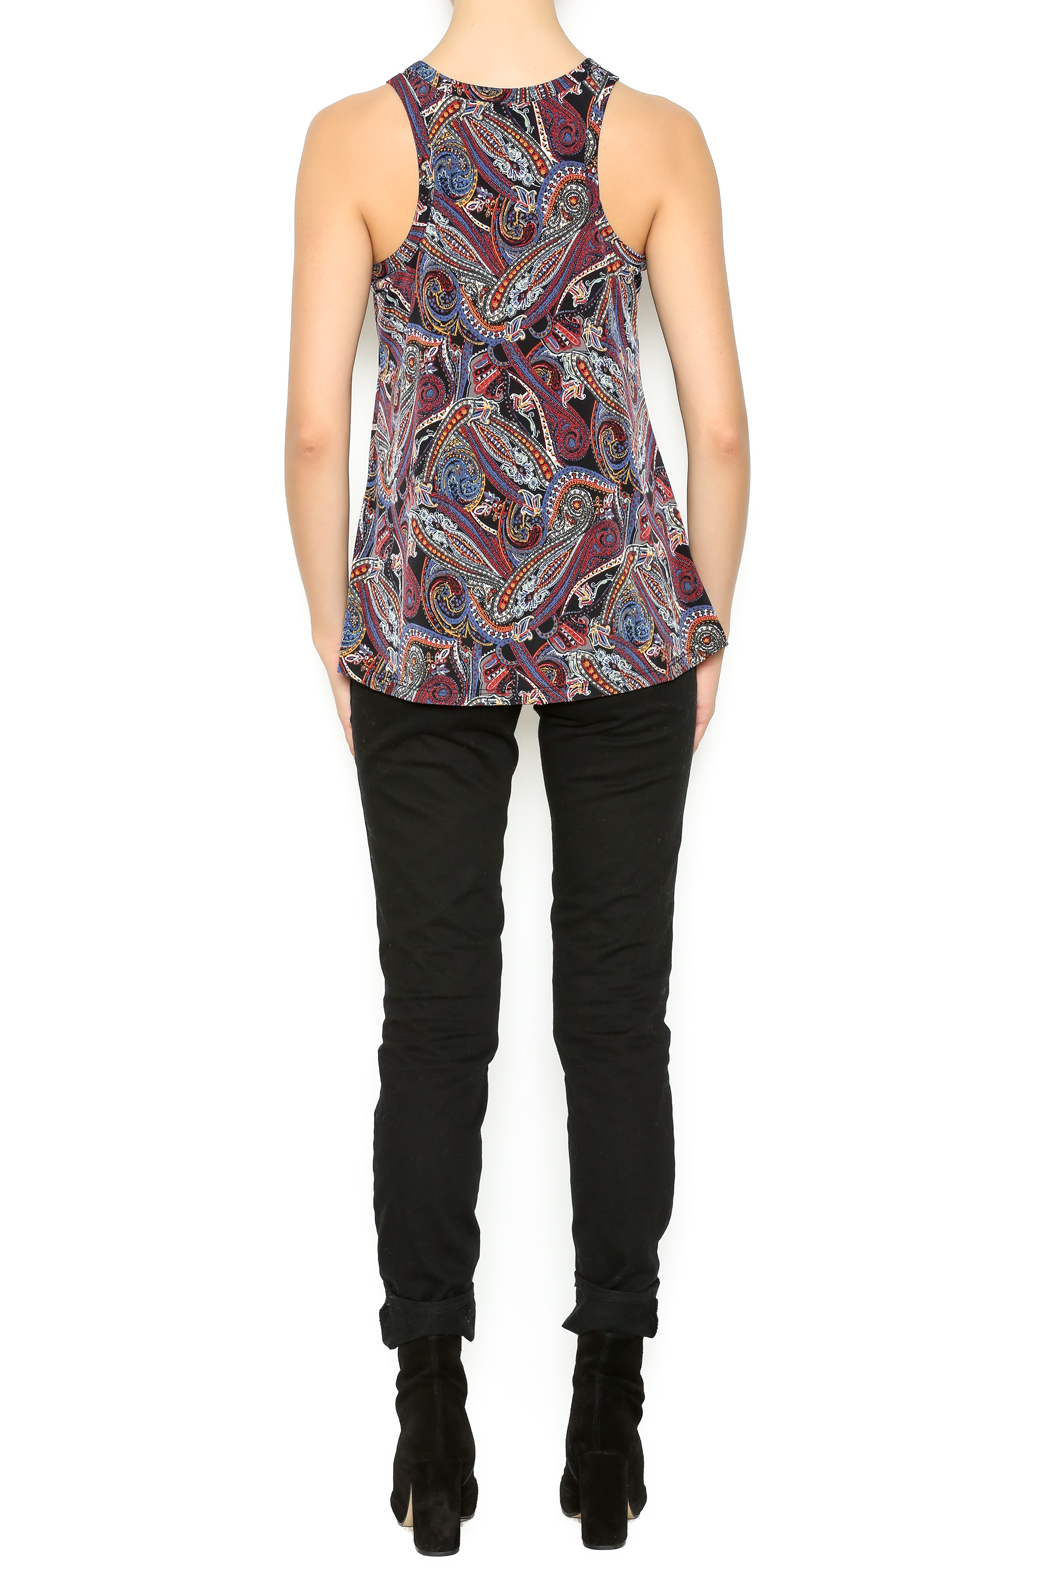 Veronica M Paisley Printed Tank - Side Cropped Image